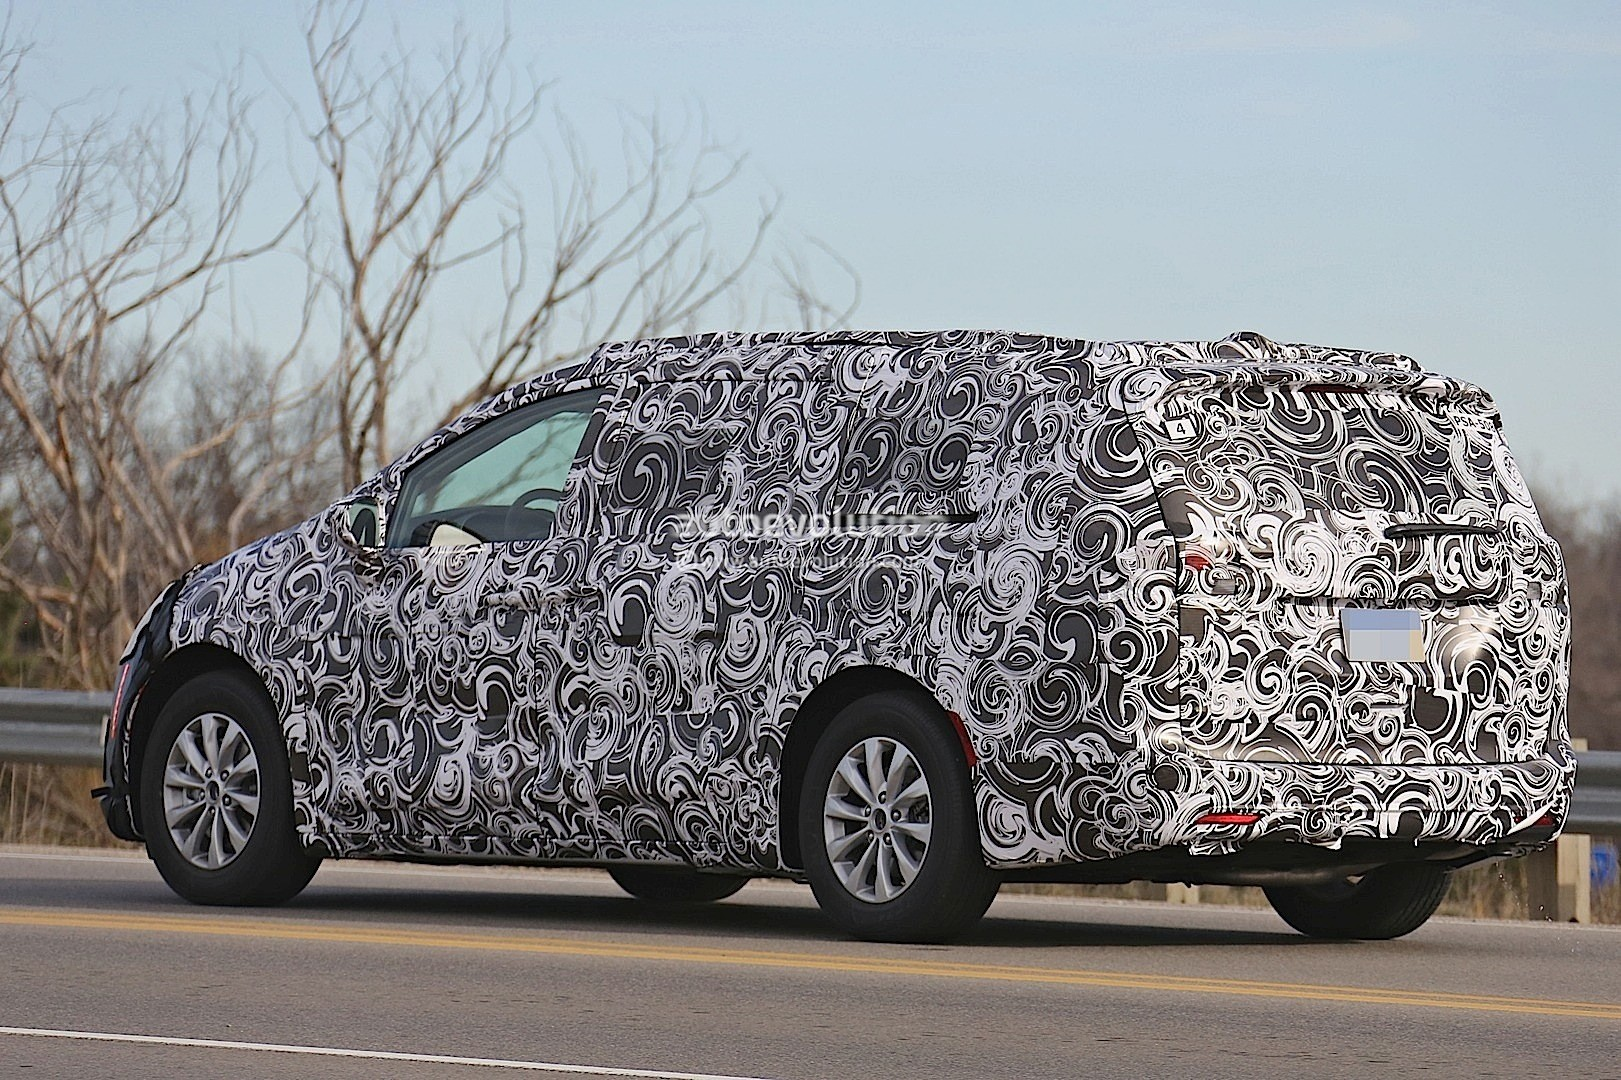 2017 Chrysler Town And Country Spyshots | 2017 - 2018 Best Cars